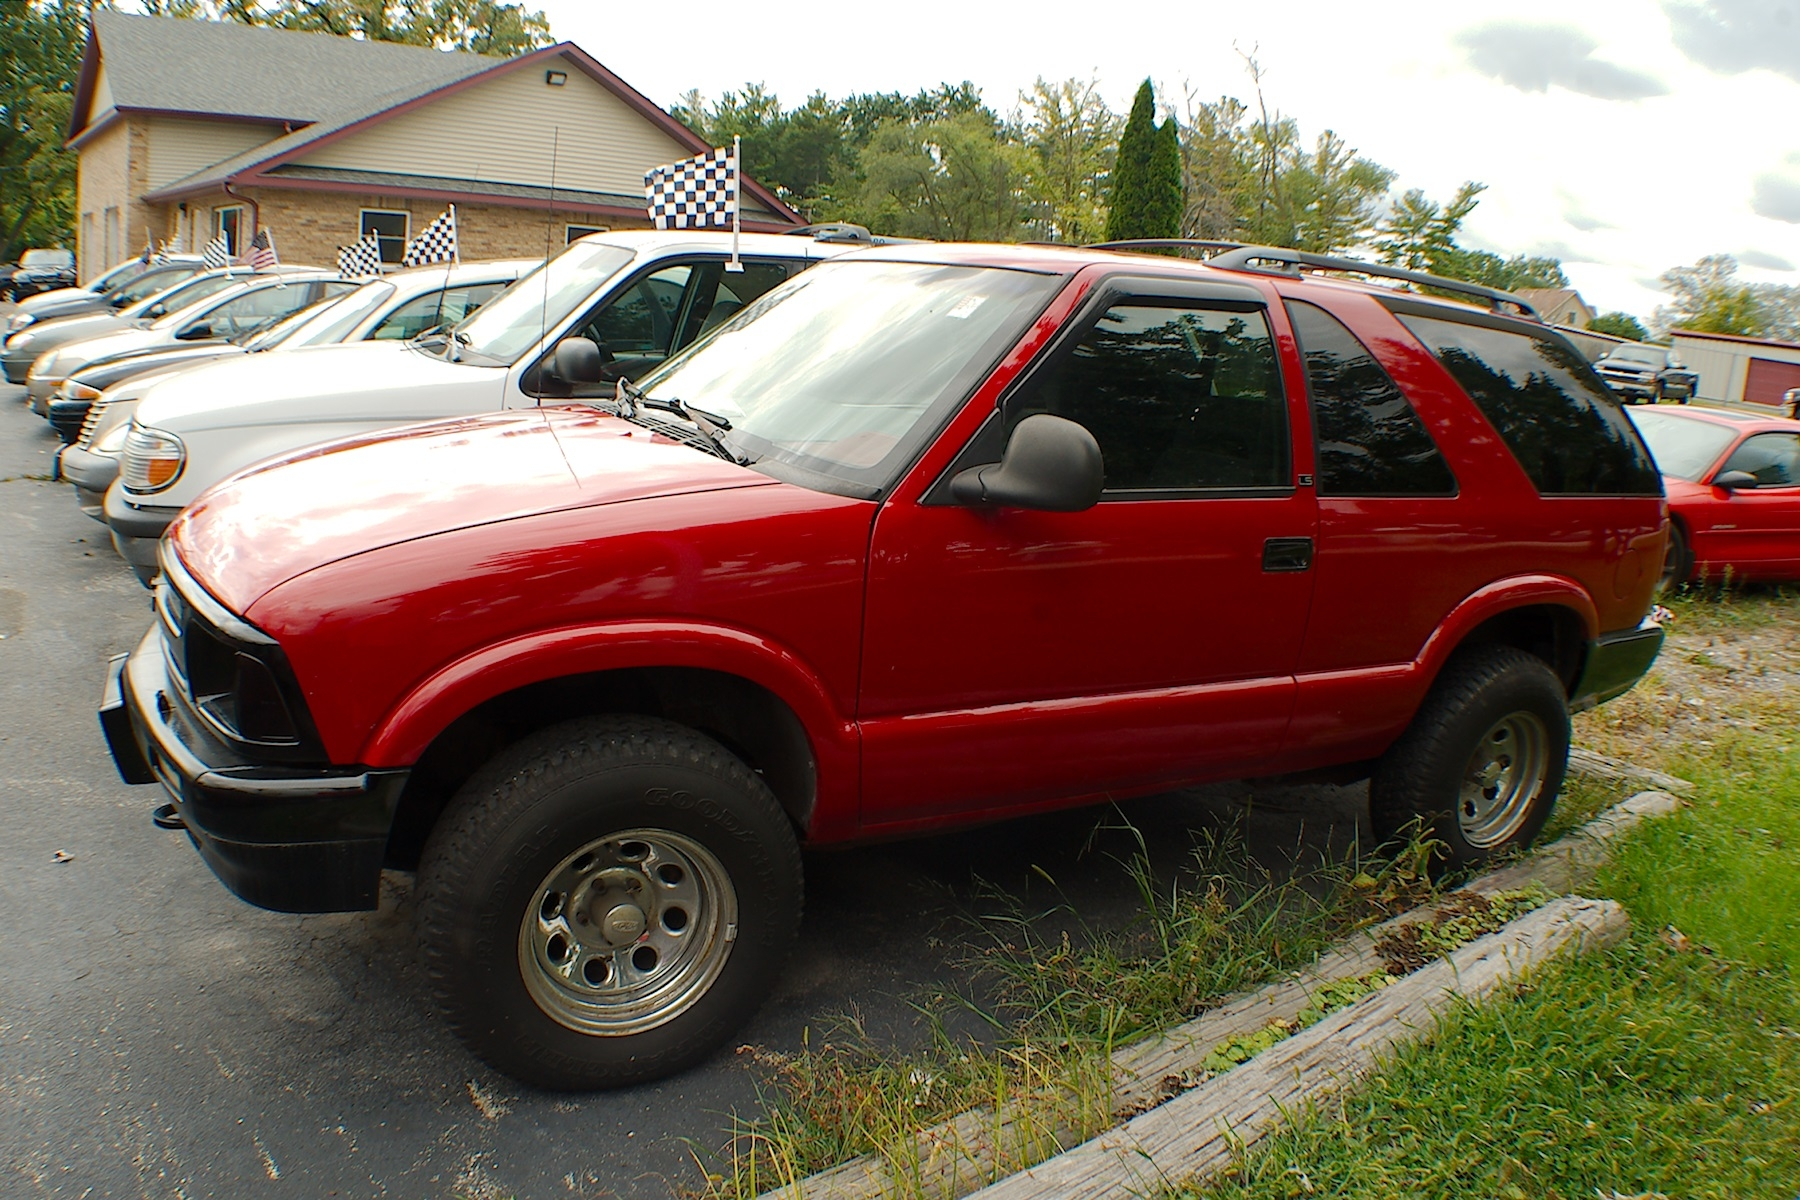 1996 Chevrolet Blazer LS 2Dr Red 4x4 SUV Sale Antioch Zion Waukegan Lake County Illinois